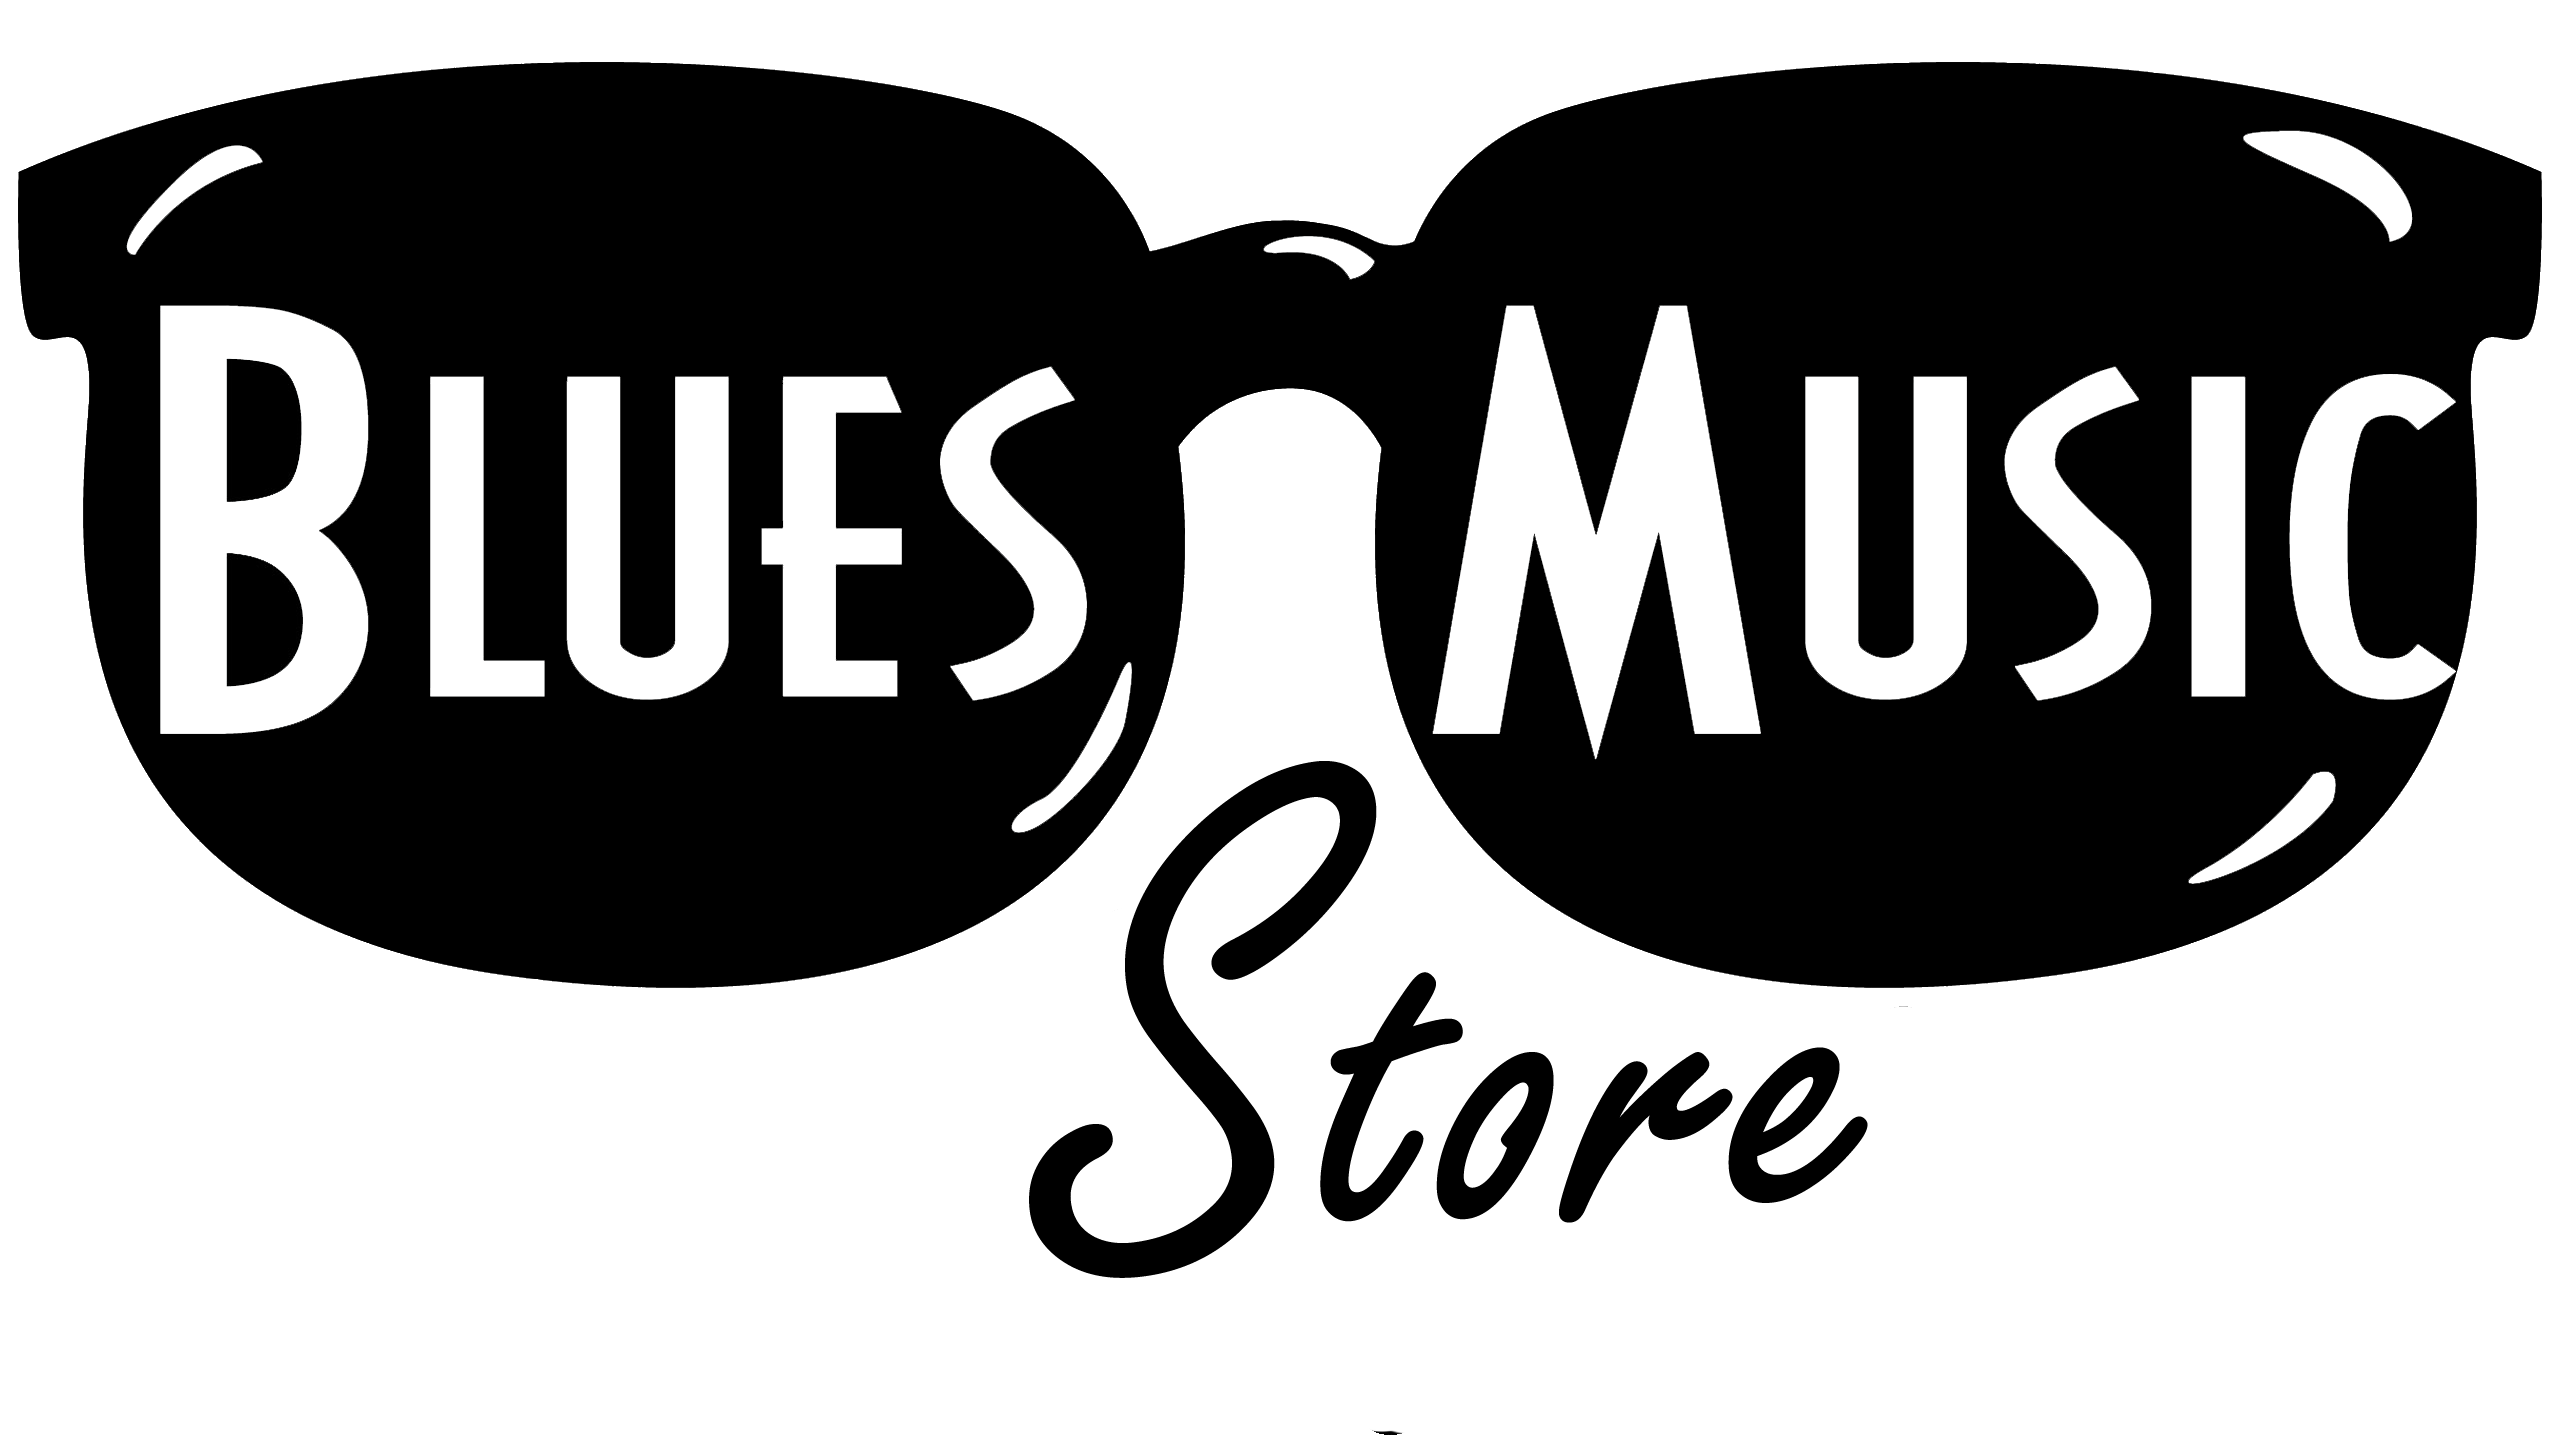 2017-blues-music-store-corrected-4.2.17.png